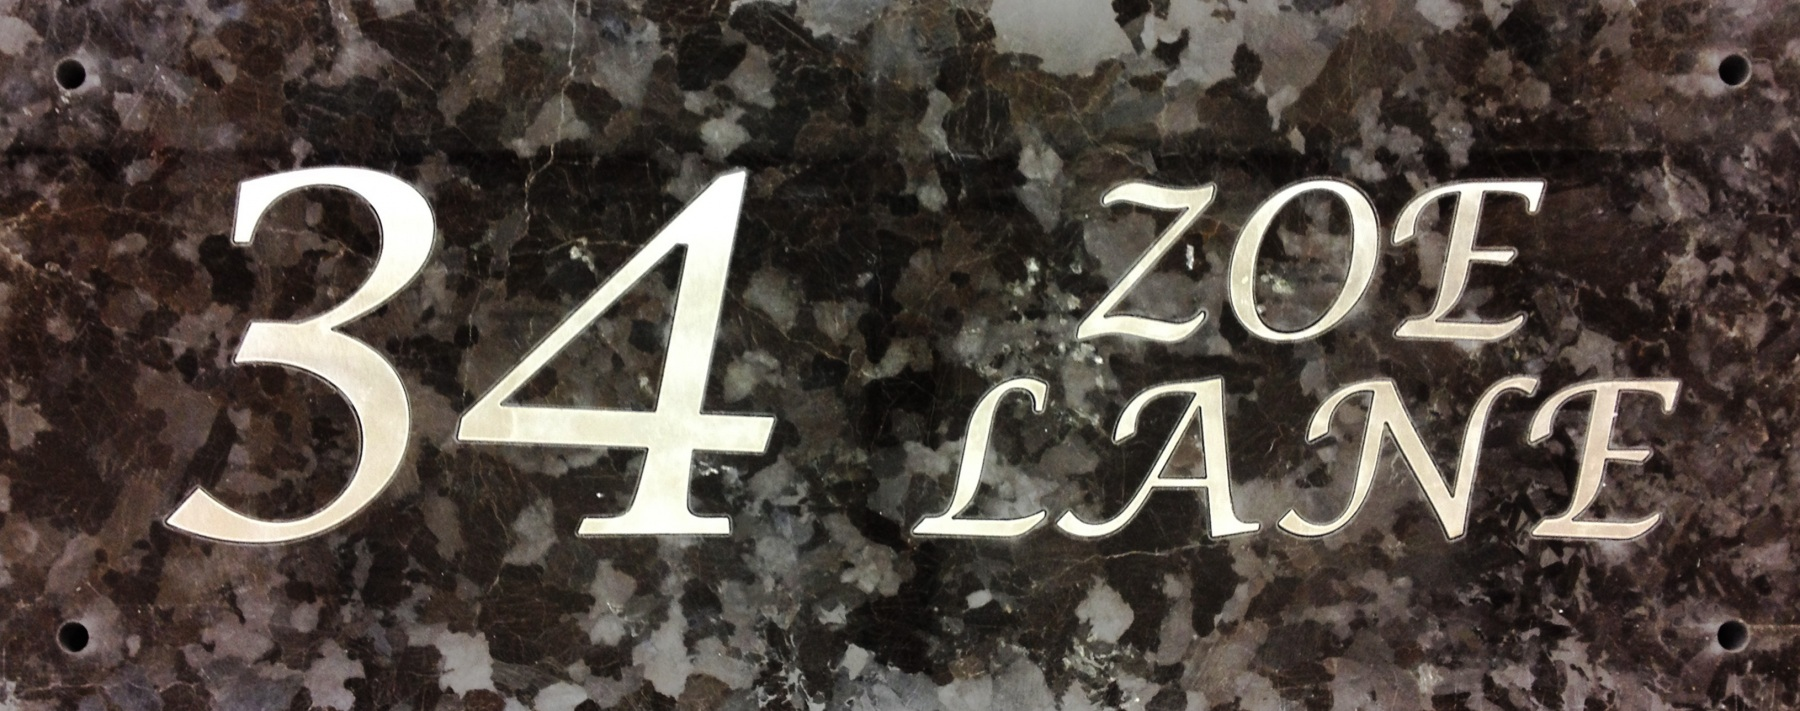 house.Number.zoe_